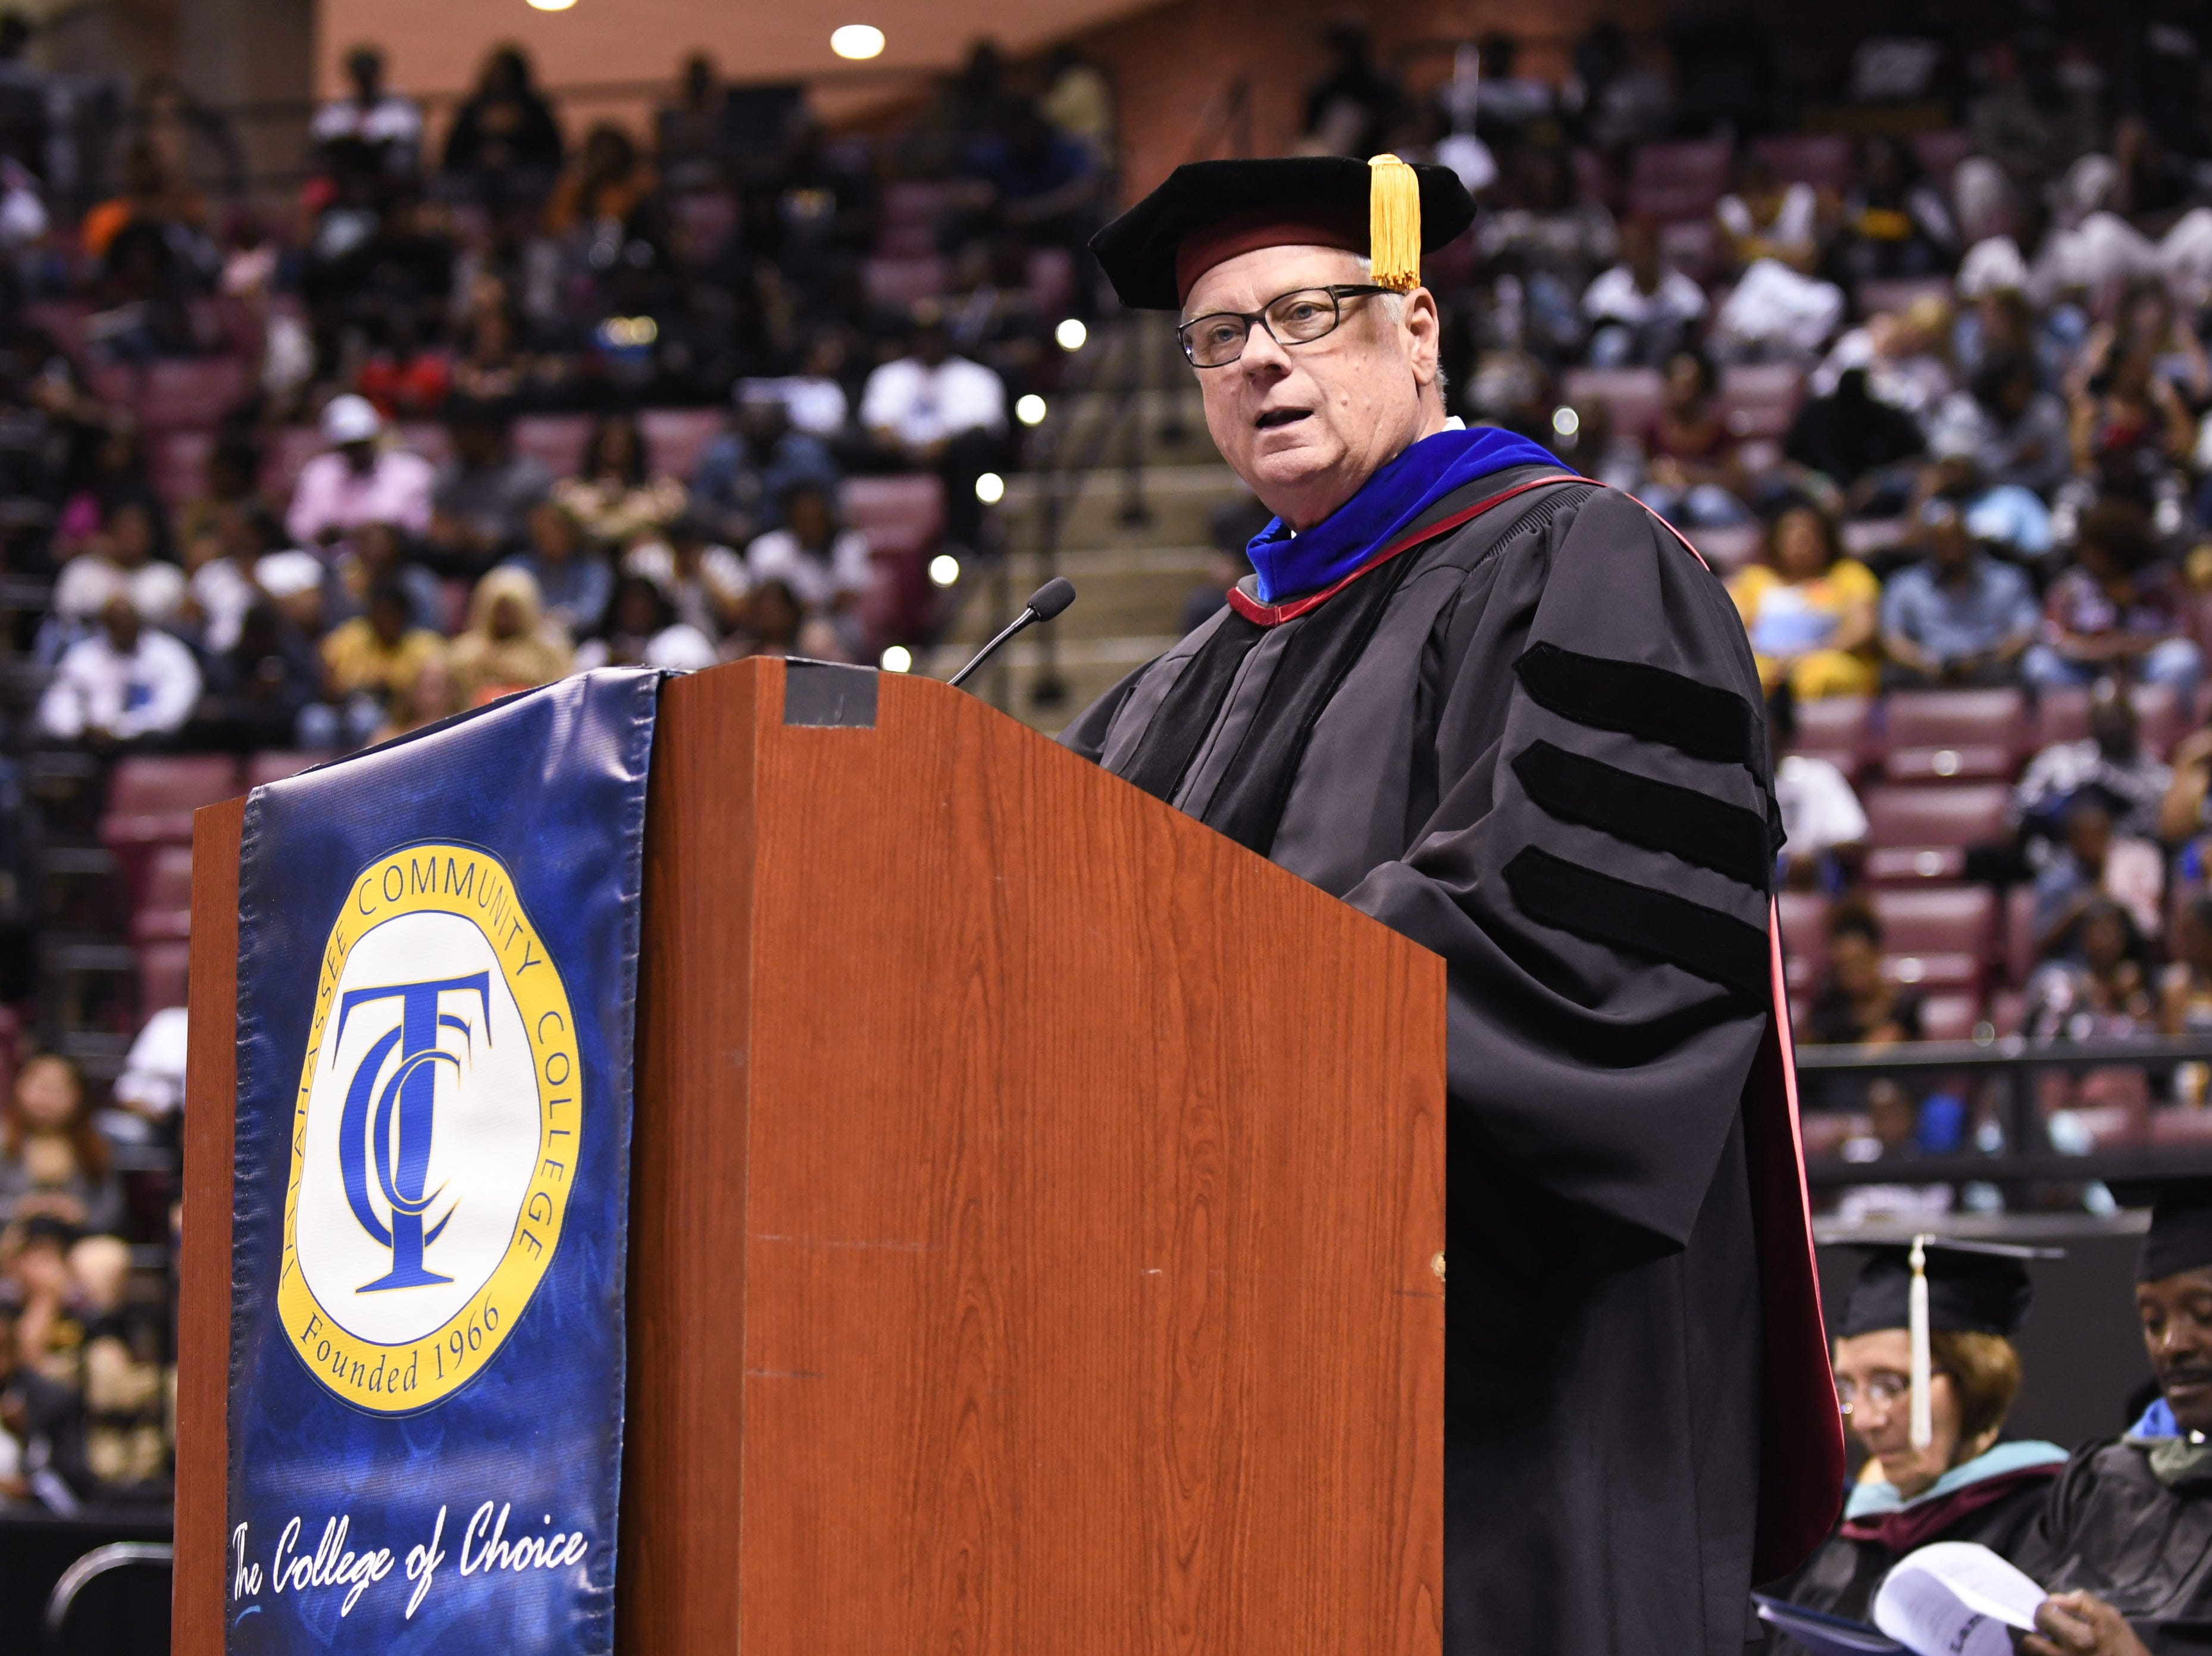 Tallahassee Community College President Jim Murdaugh speaks at the school's spring commencement ceremony at Donald L. Tucker Civic Center Saturday, May 4, 2019.